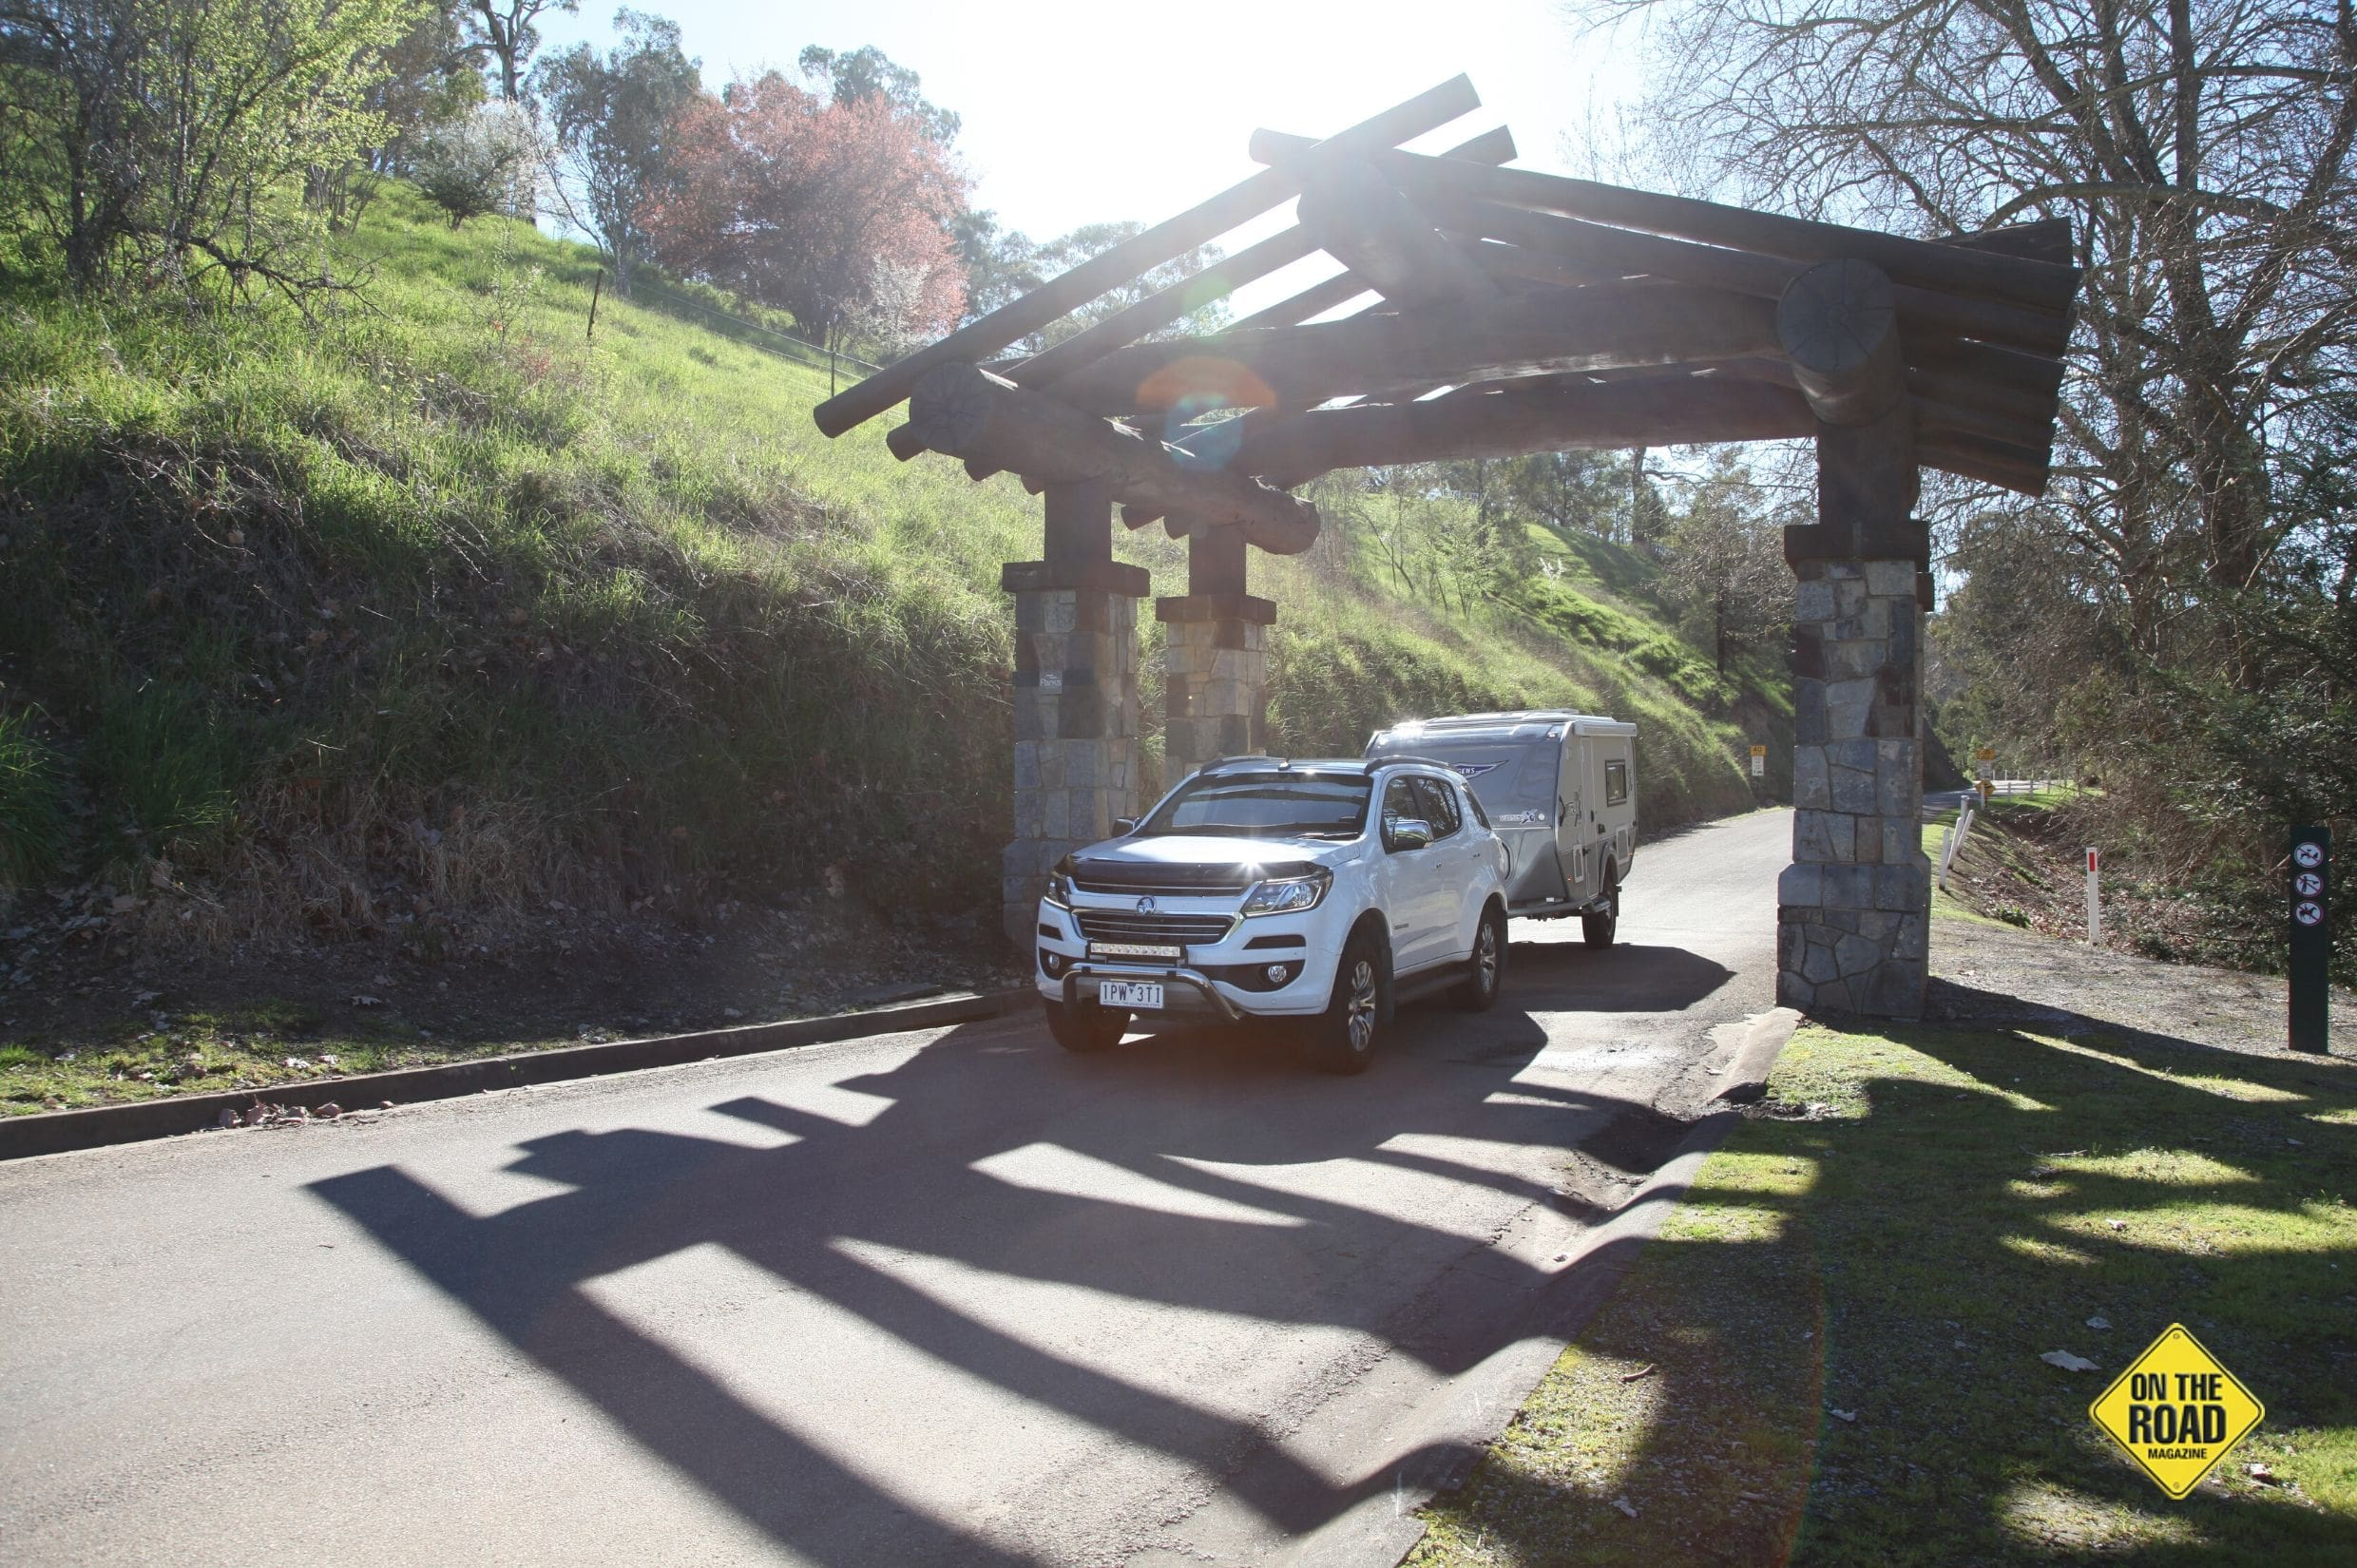 The impressive entrance to the Buchan Caves Reserve and Caravan Park